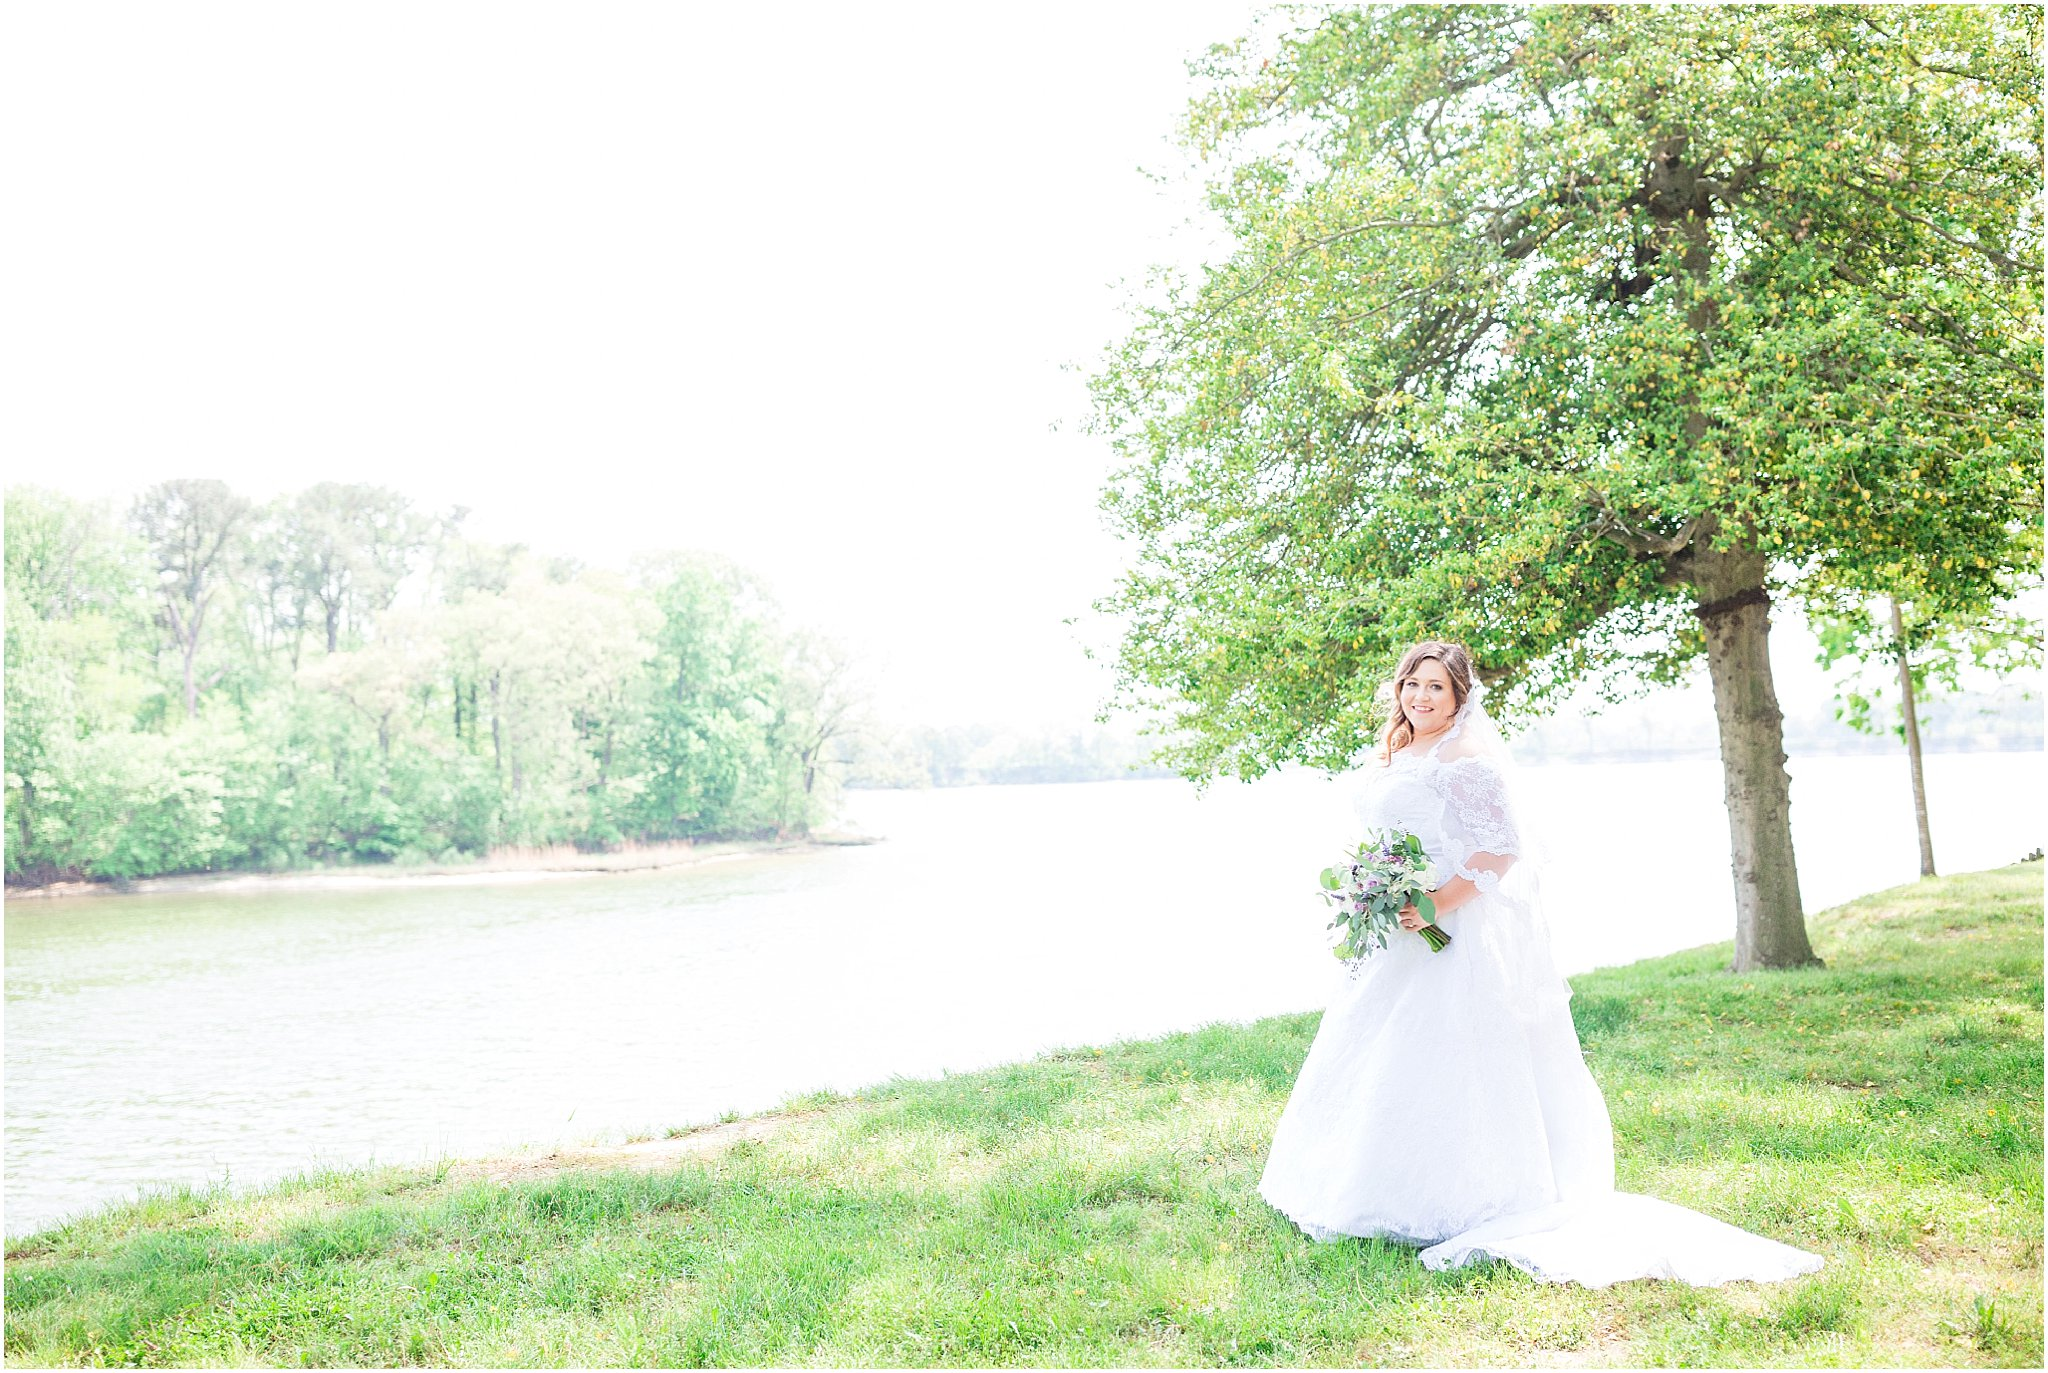 cole-wye-island-wedding-cassidymrphotography_0040